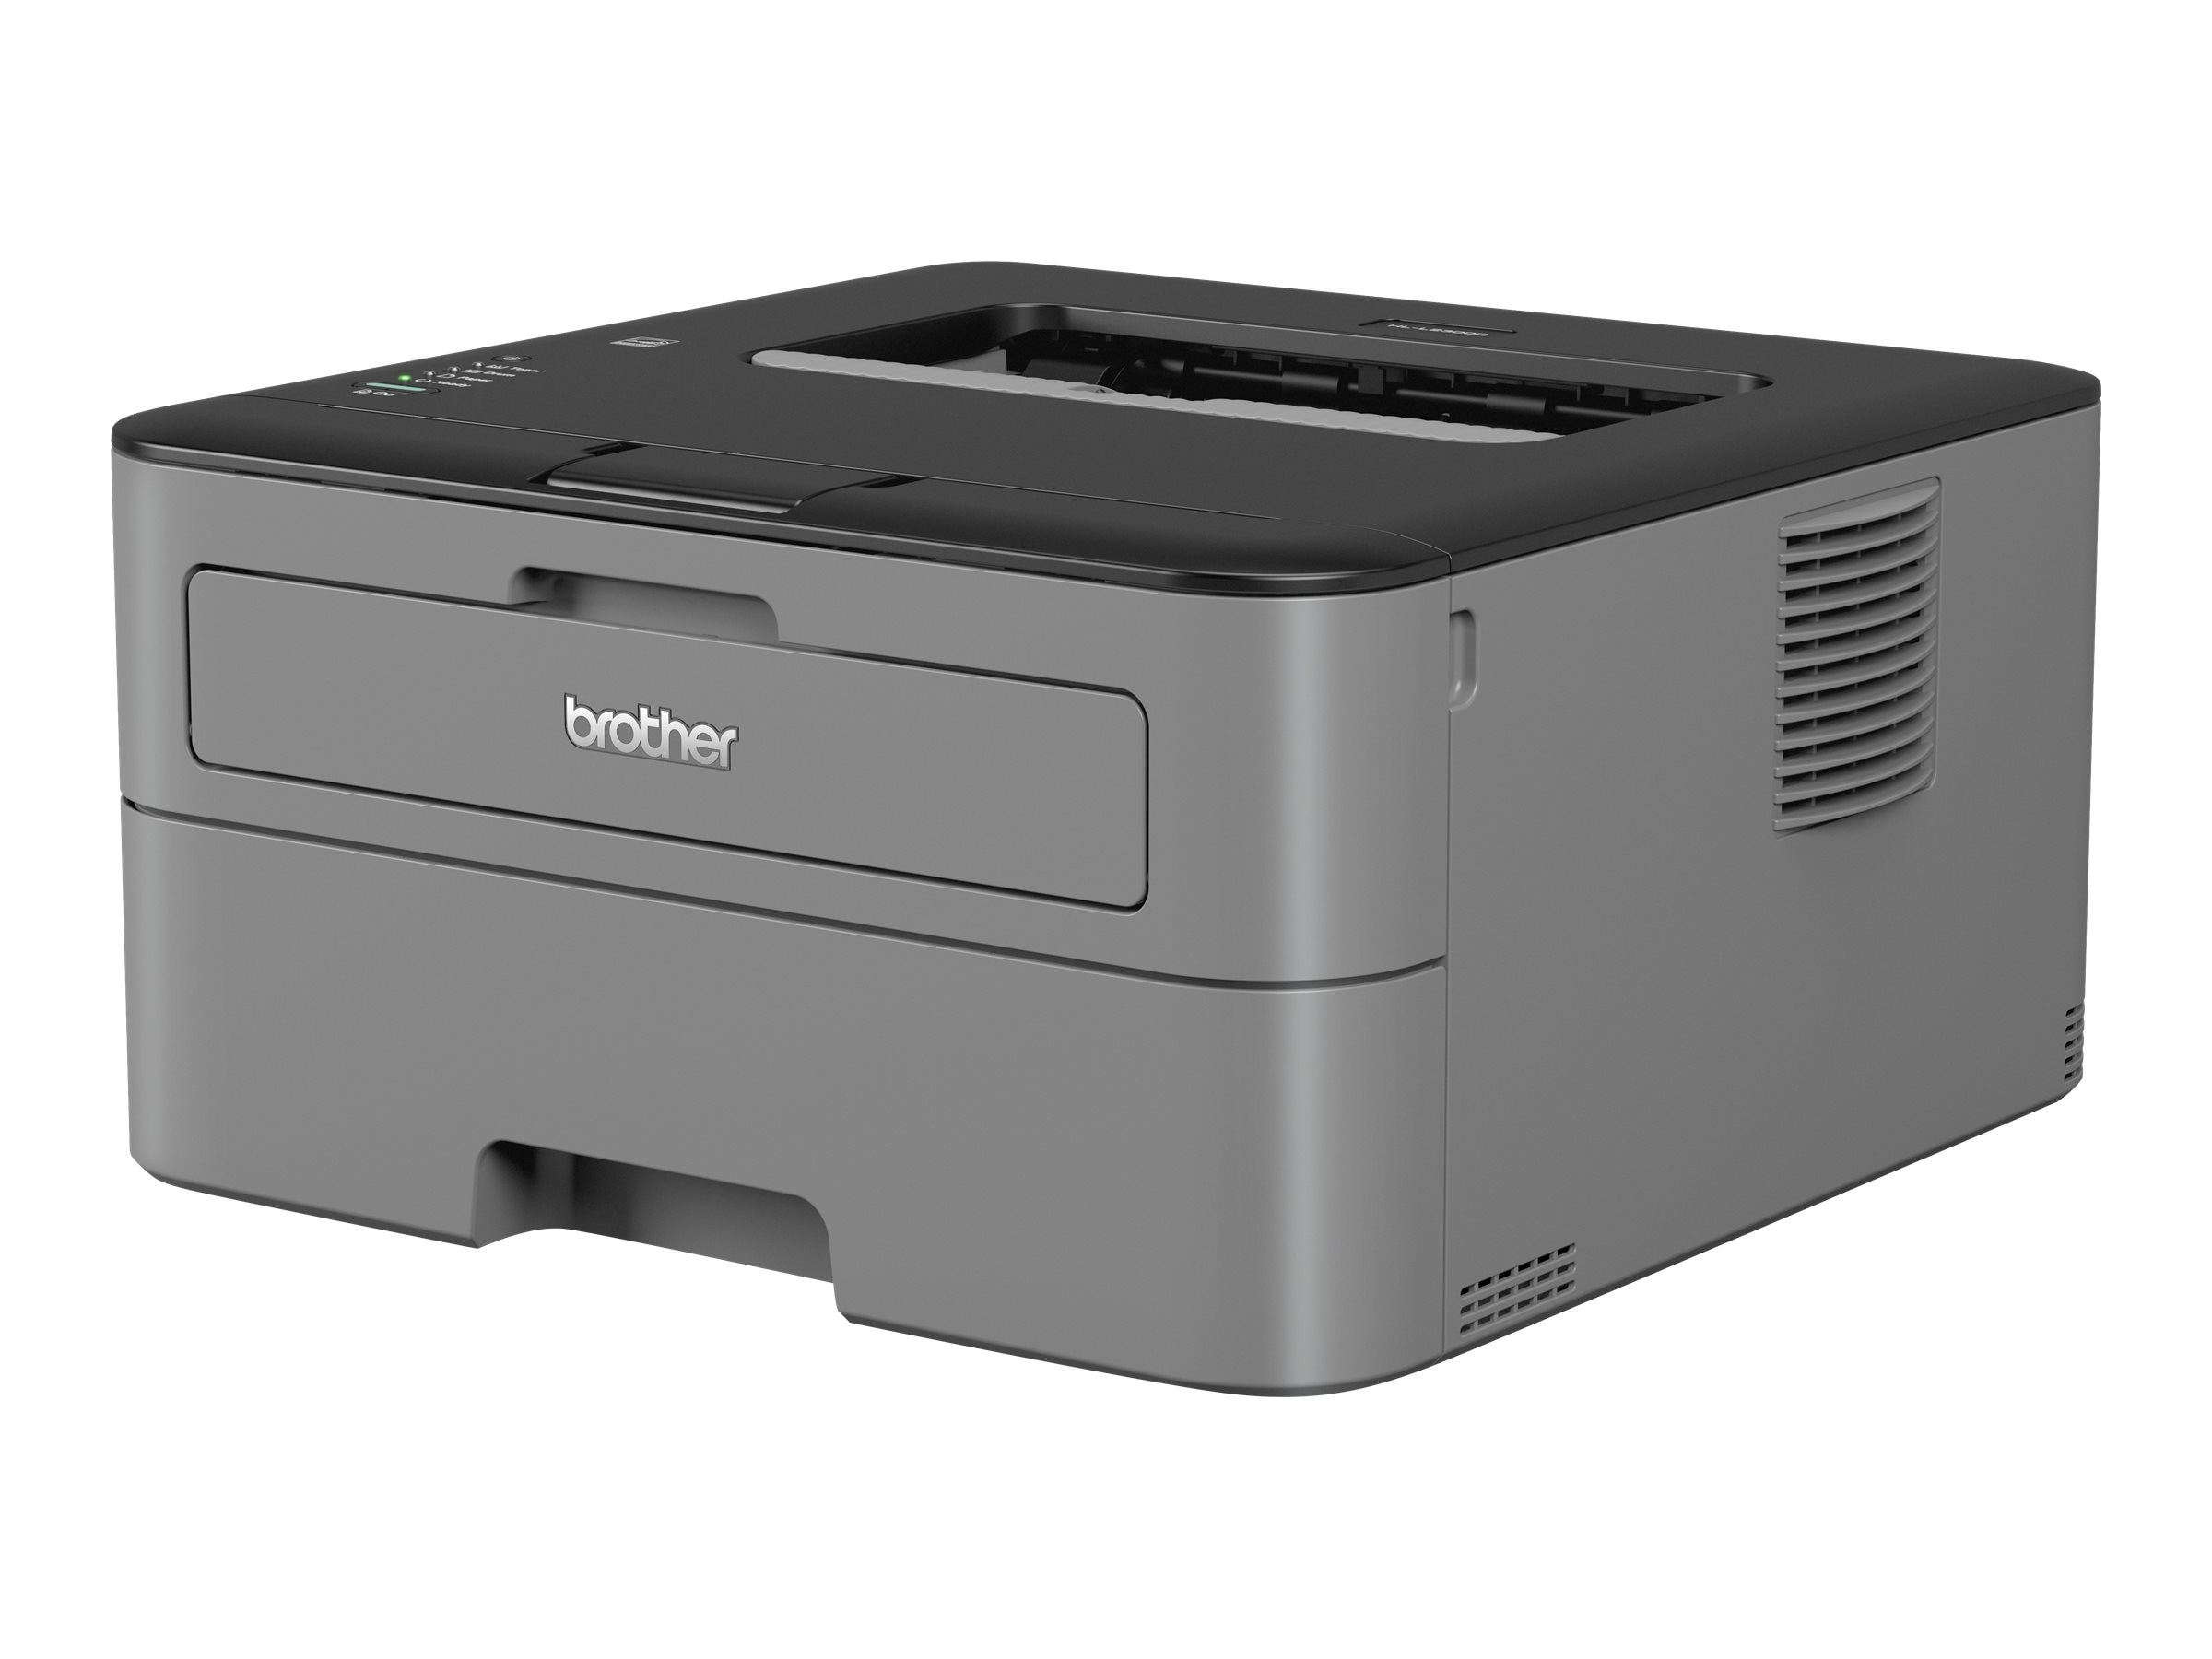 Brother HL-L2300D Compact Personal Laser Printer, HL-L2300D, 17804654, Printers - Laser & LED (monochrome)